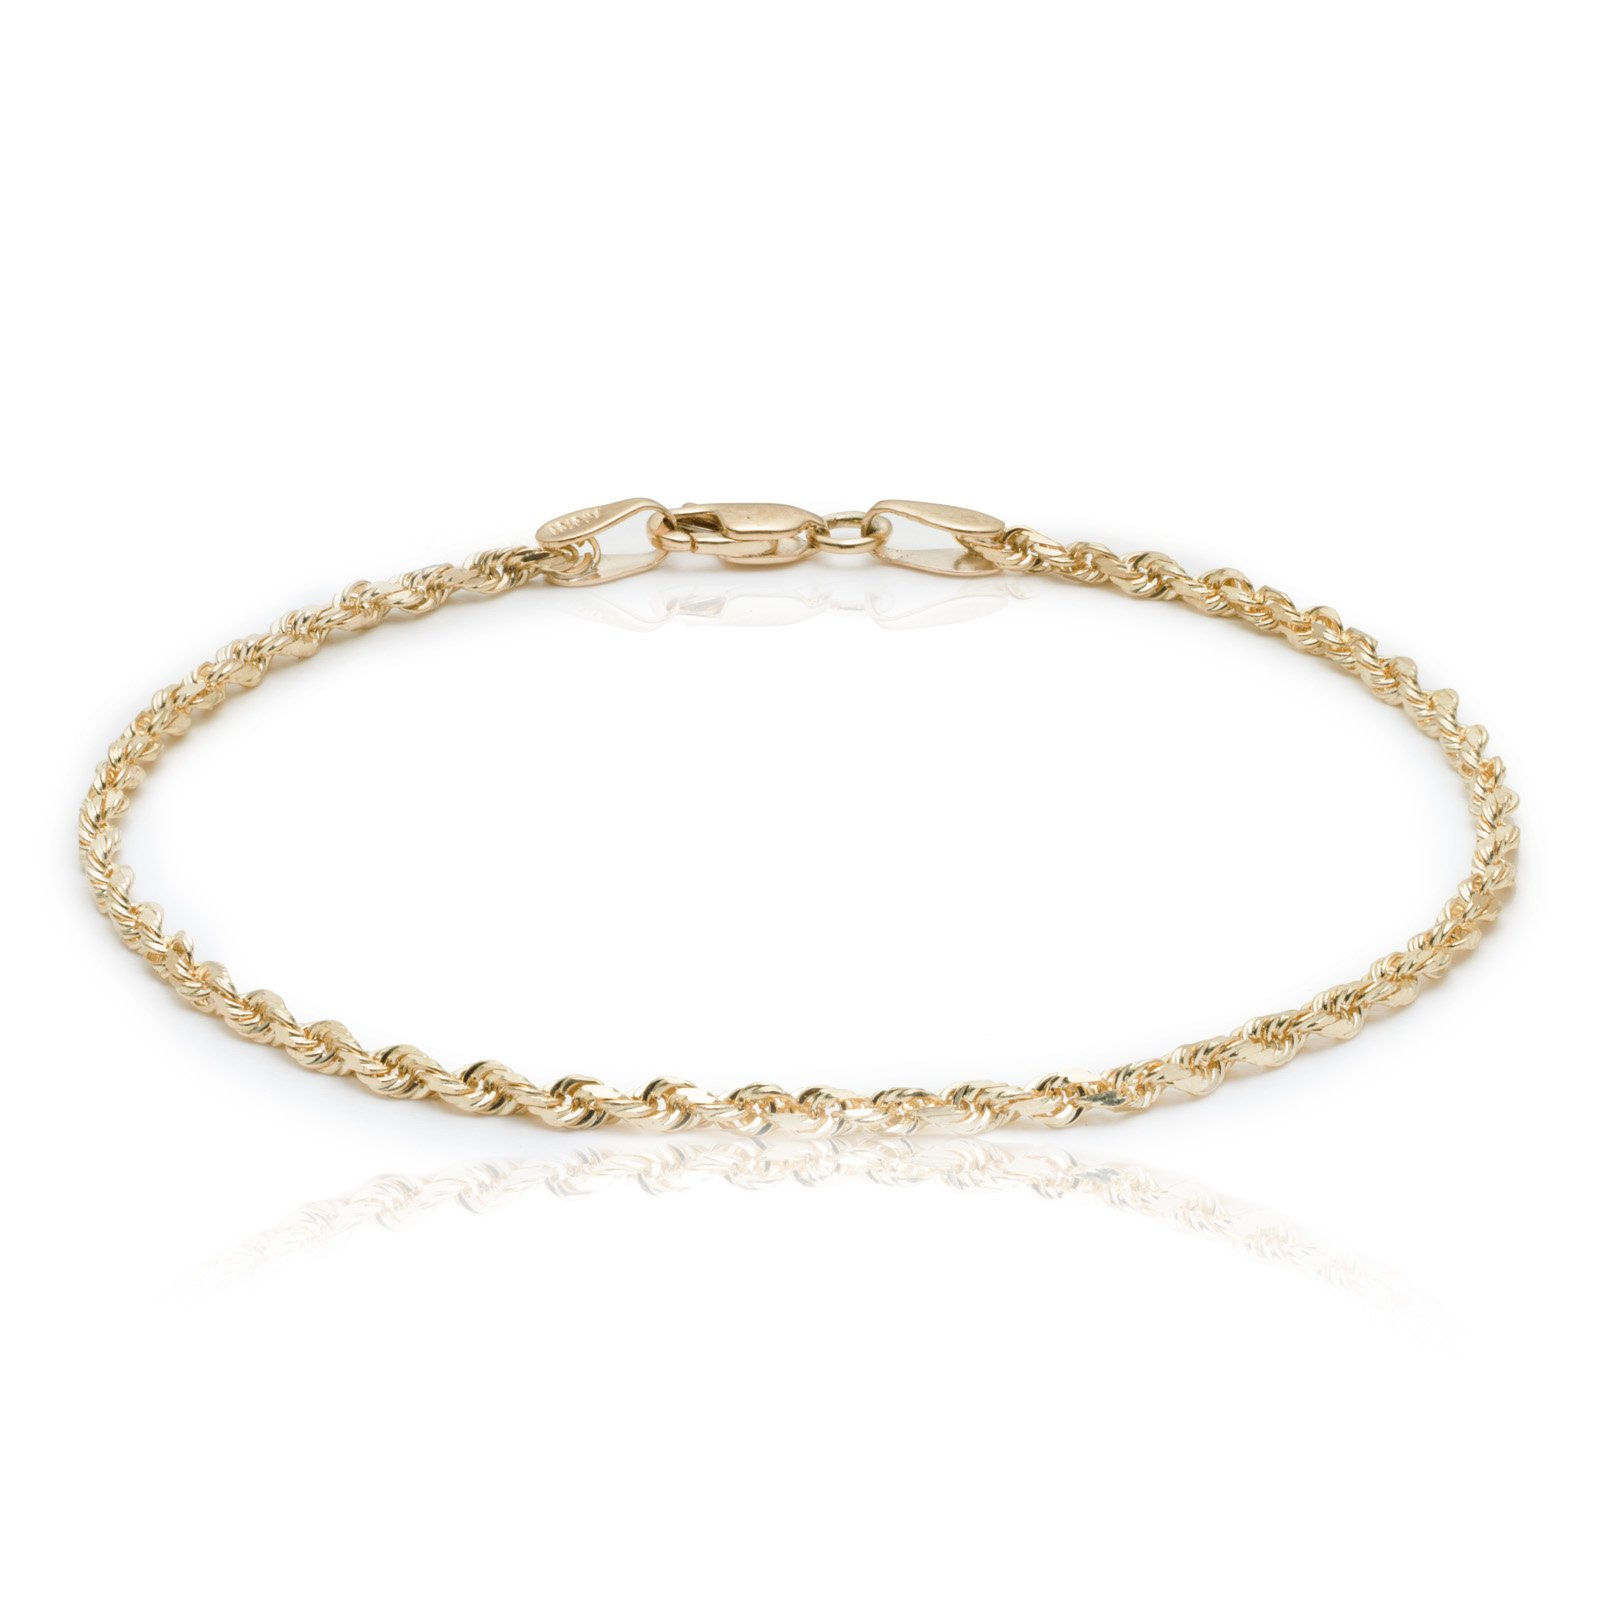 10 Inch 10k Yellow Gold Solid Diamond Cut Rope Chain Bracelet and Anklet for Men & Women, 2.25mm (0.09'')